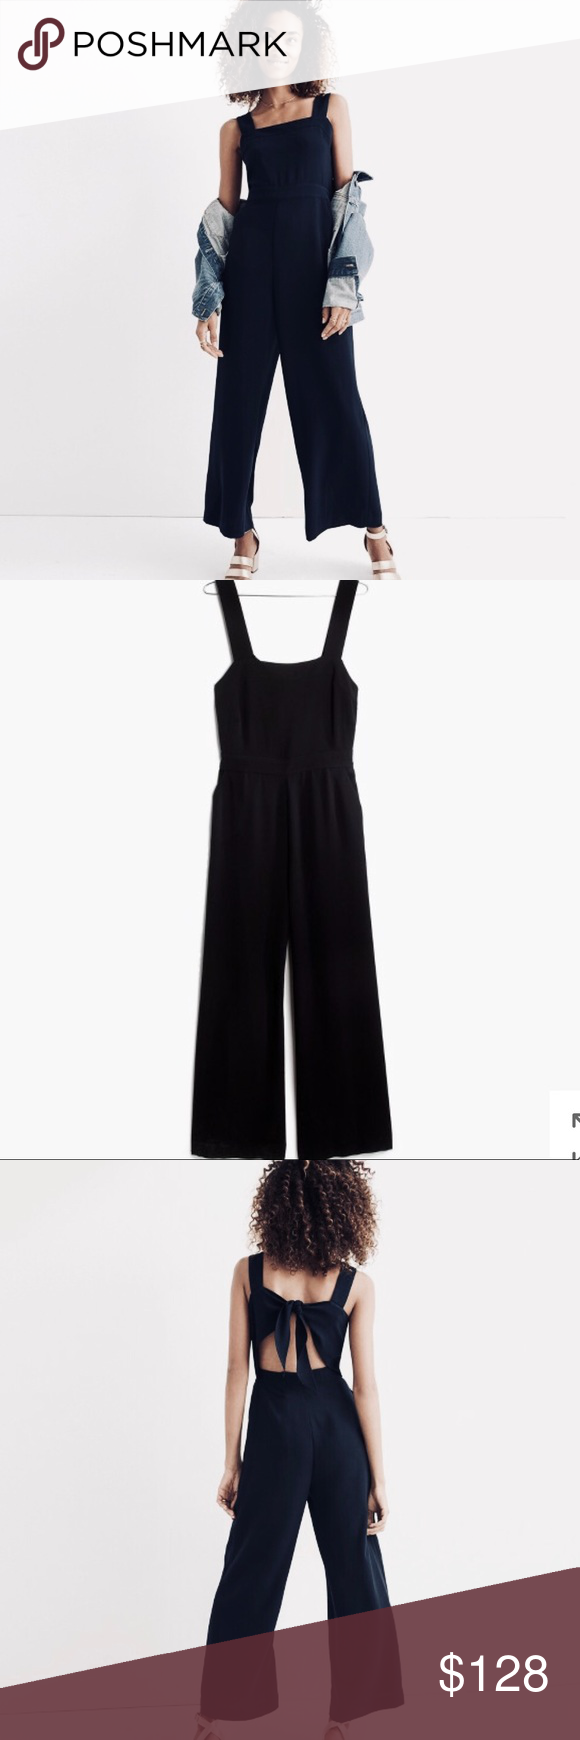 Nwt Madewell Apron Bow Back Jumpsuit Nwt In 2018 My Posh Picks